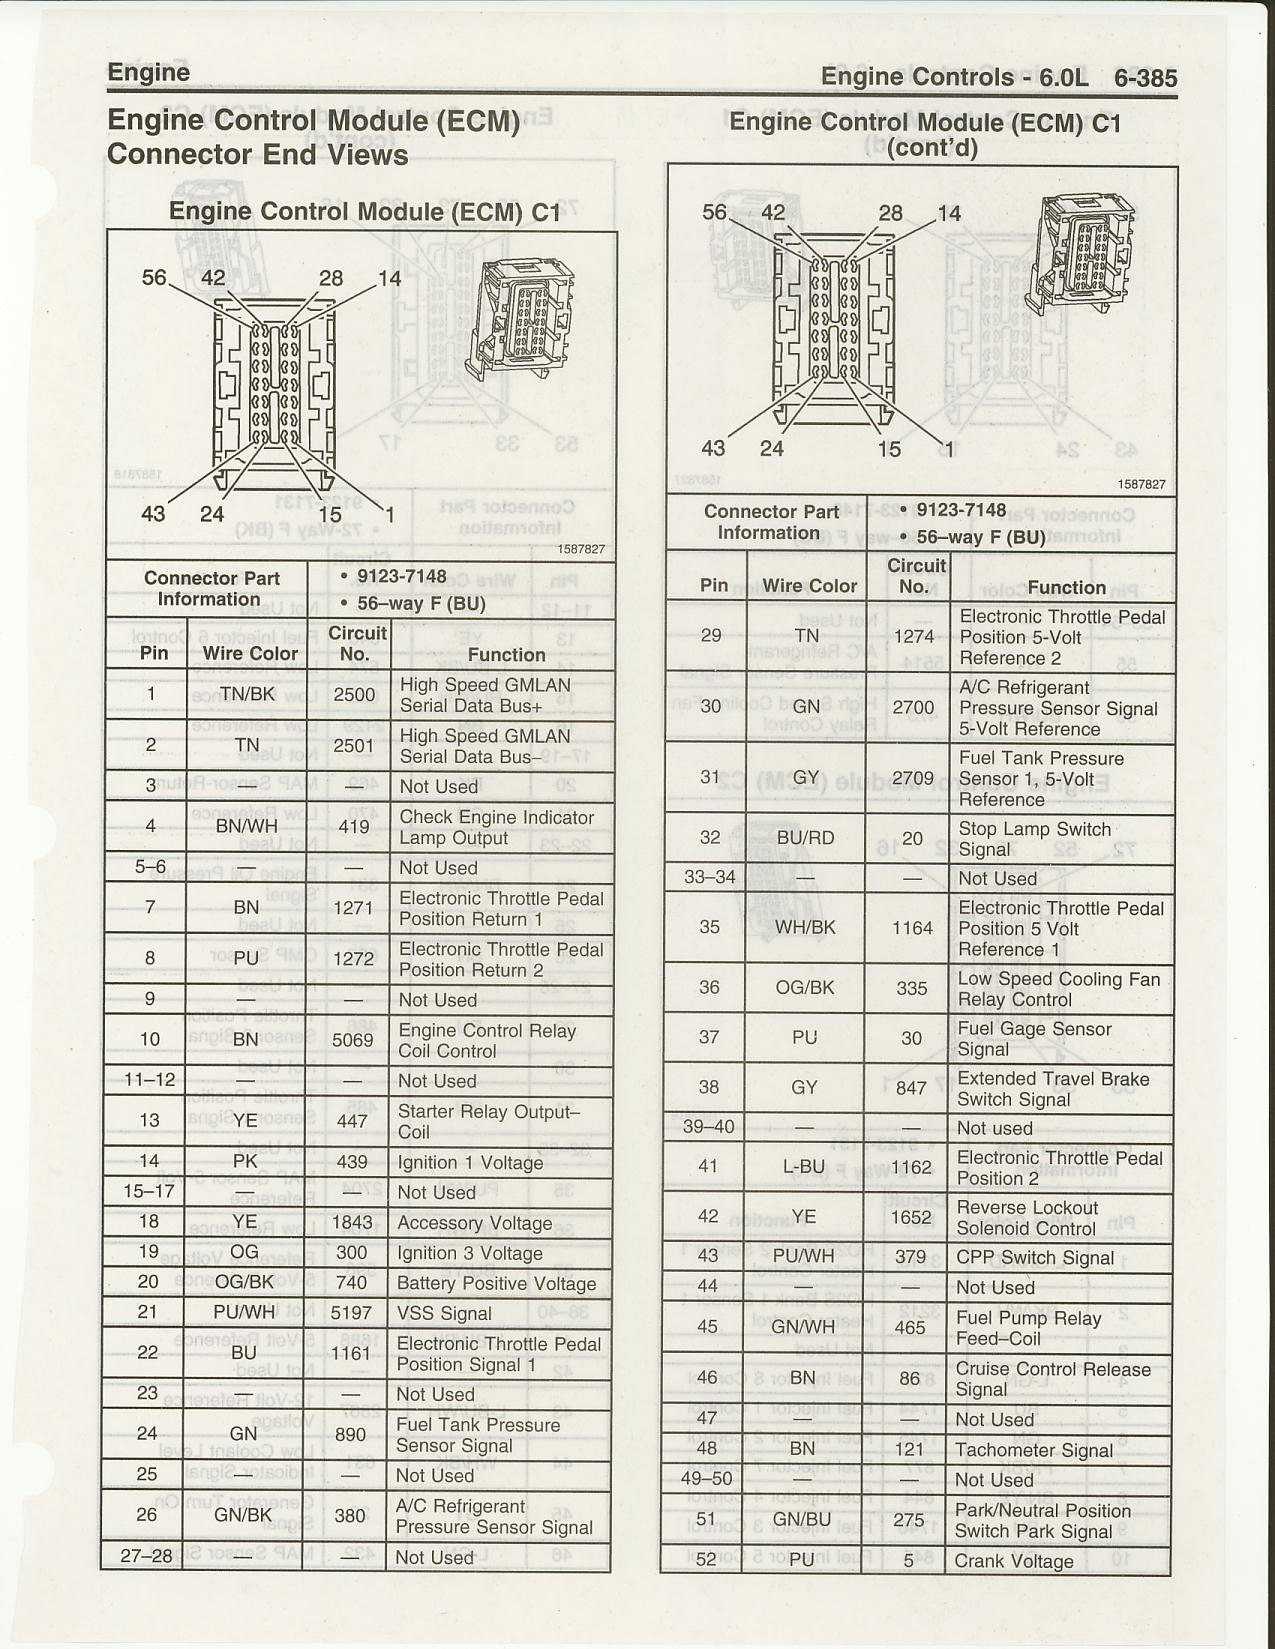 pinouts and wiring diagrams - page 5 - ls1tech - camaro ... ls2 wiring diagram gto ls2 engine diagram